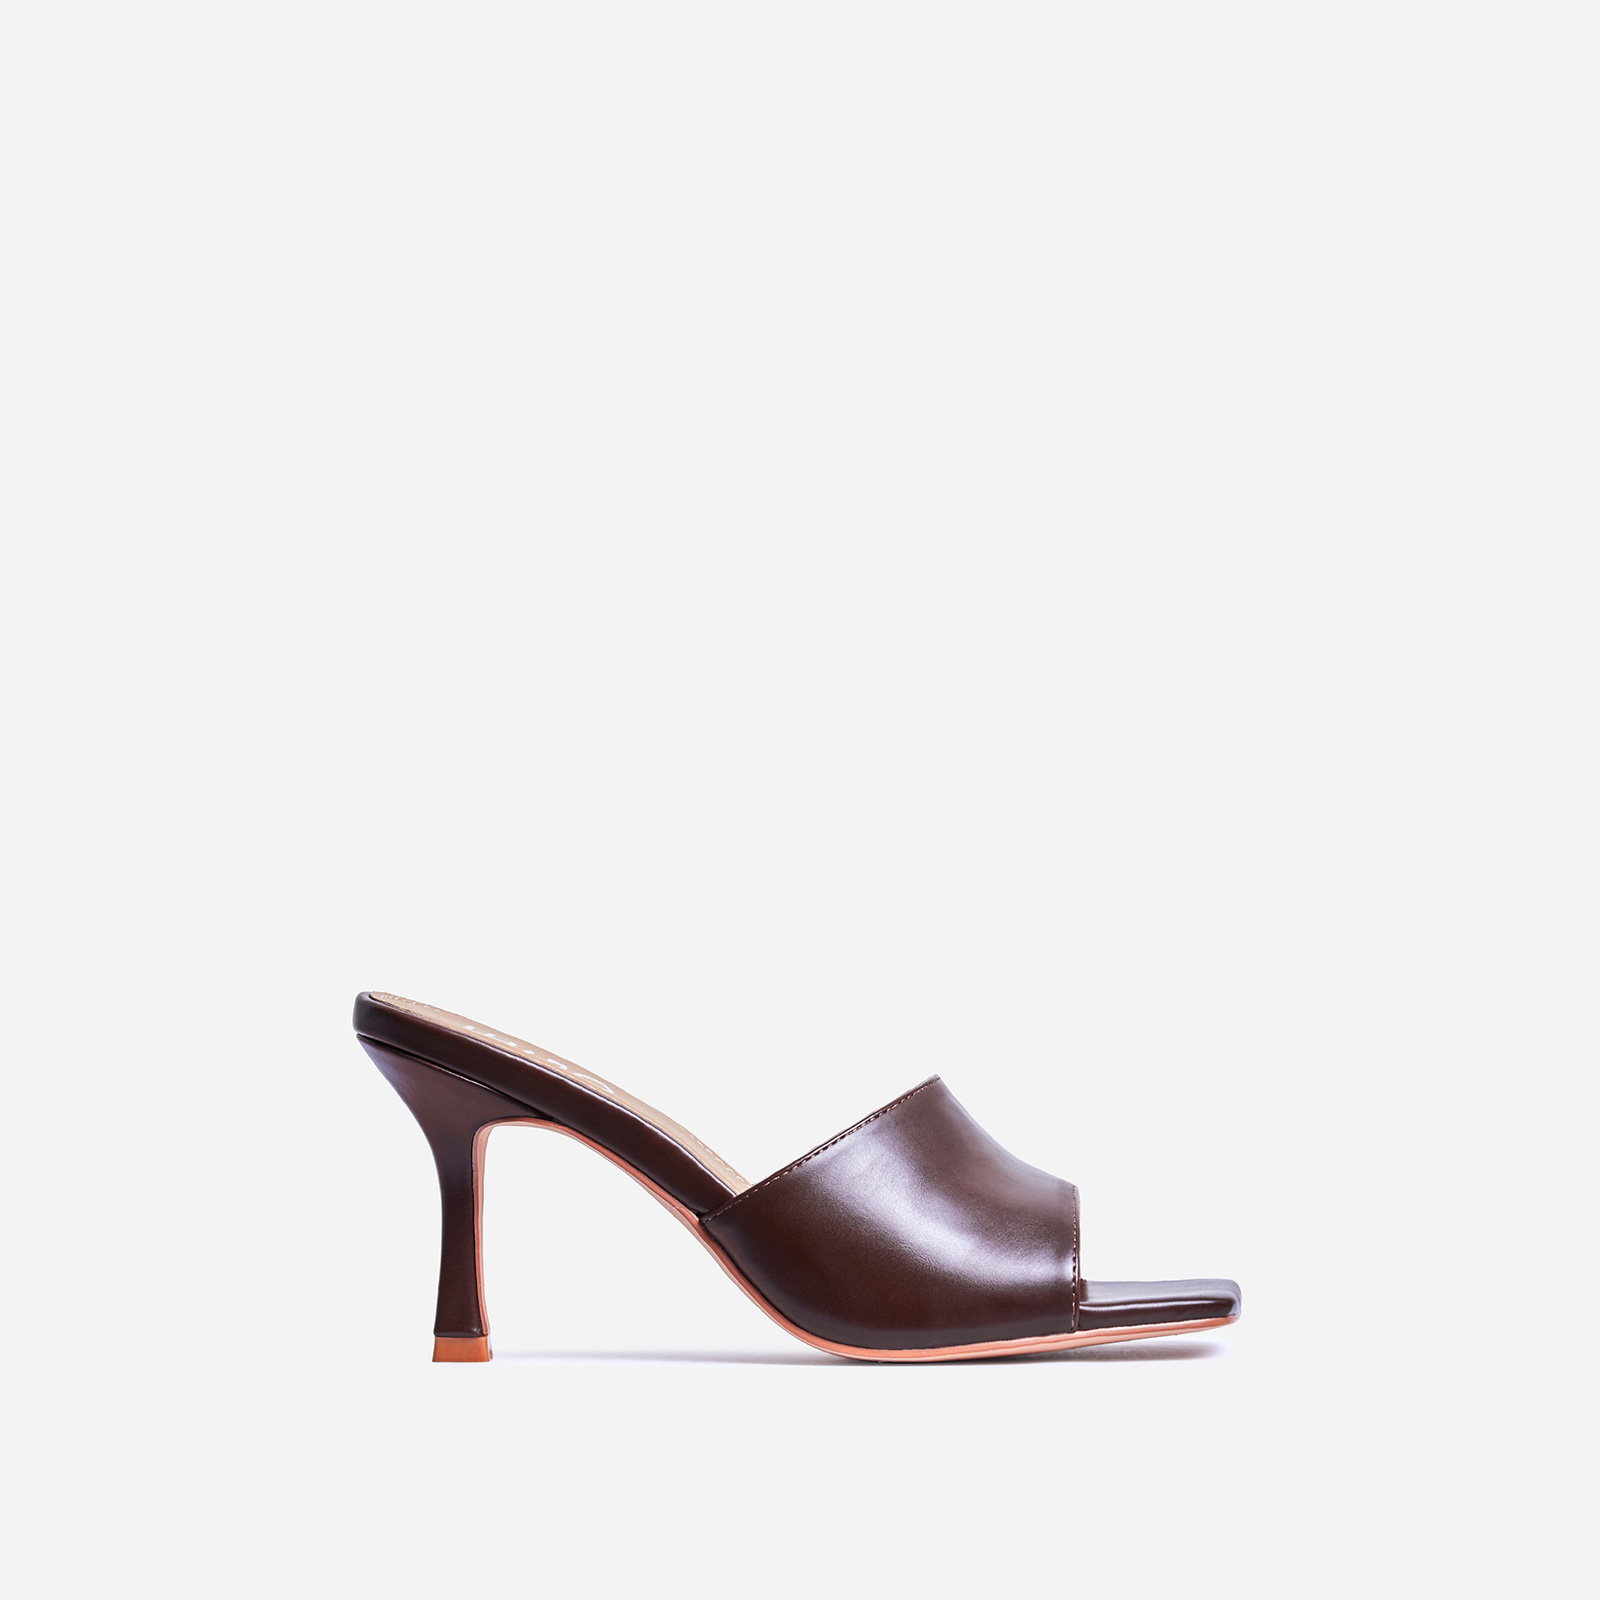 Hilton Square Peep Toe Kitten Heel Mule In Brown Faux Leather